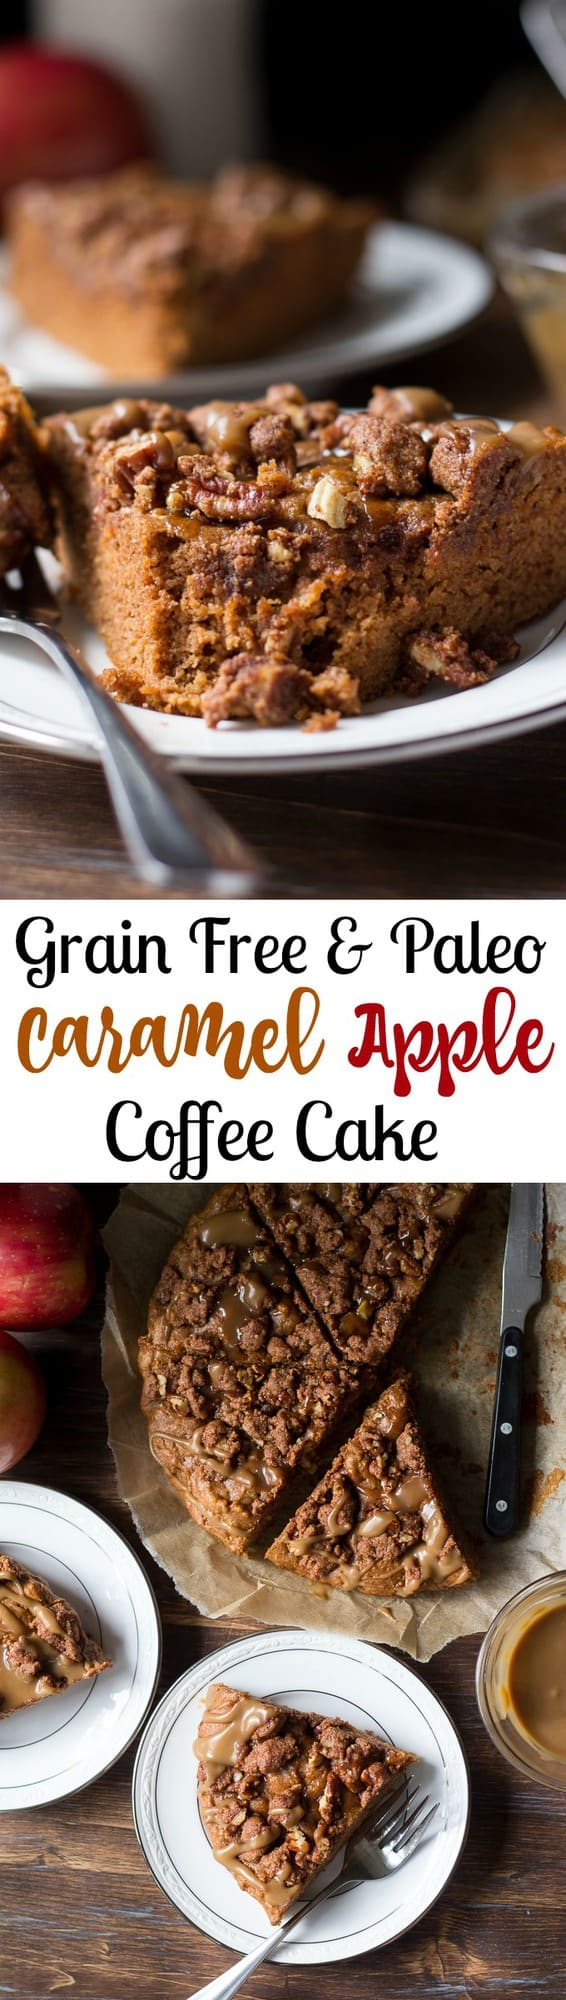 Paleo Caramel Apple Coffee Cake - grain free dairy free